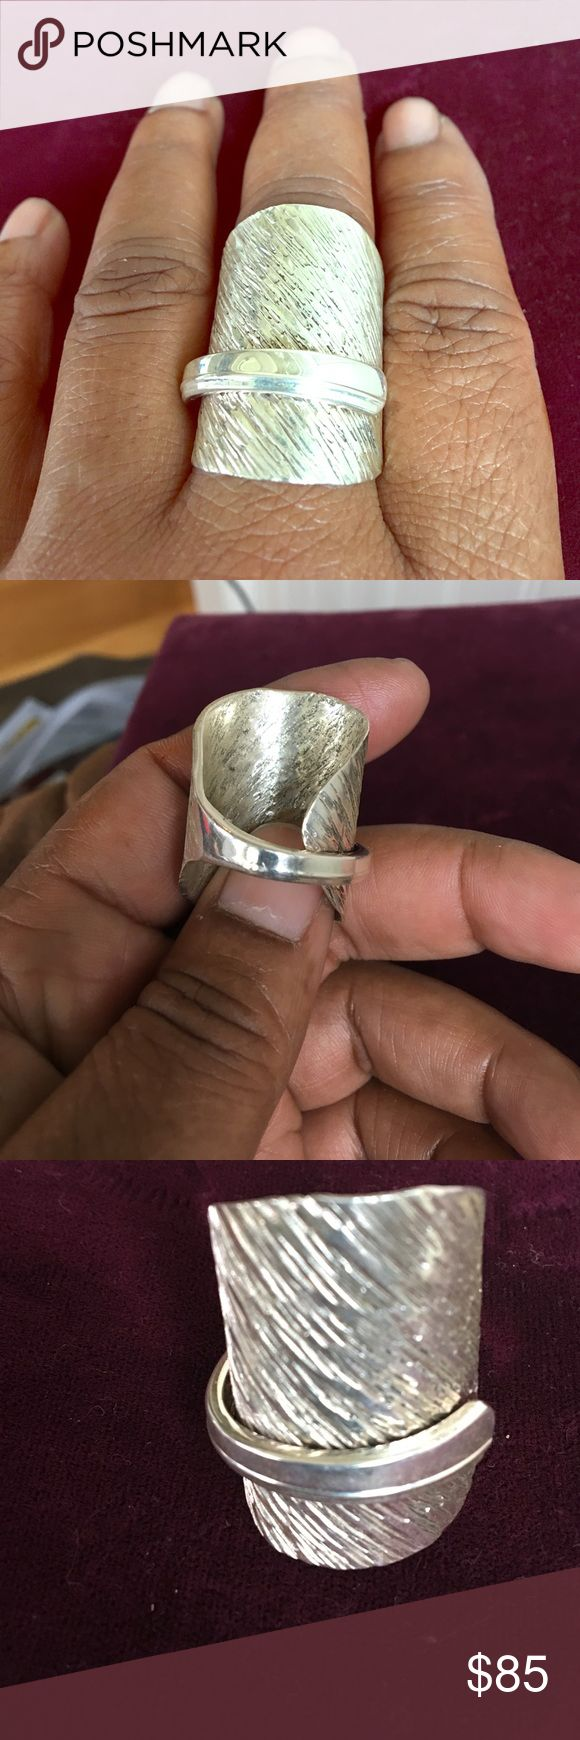 Sterling silver spoon ring Sterling silver spoon ring.. I had  several rings made out of some sterling silver flatware that I had .. Jewelry Rings